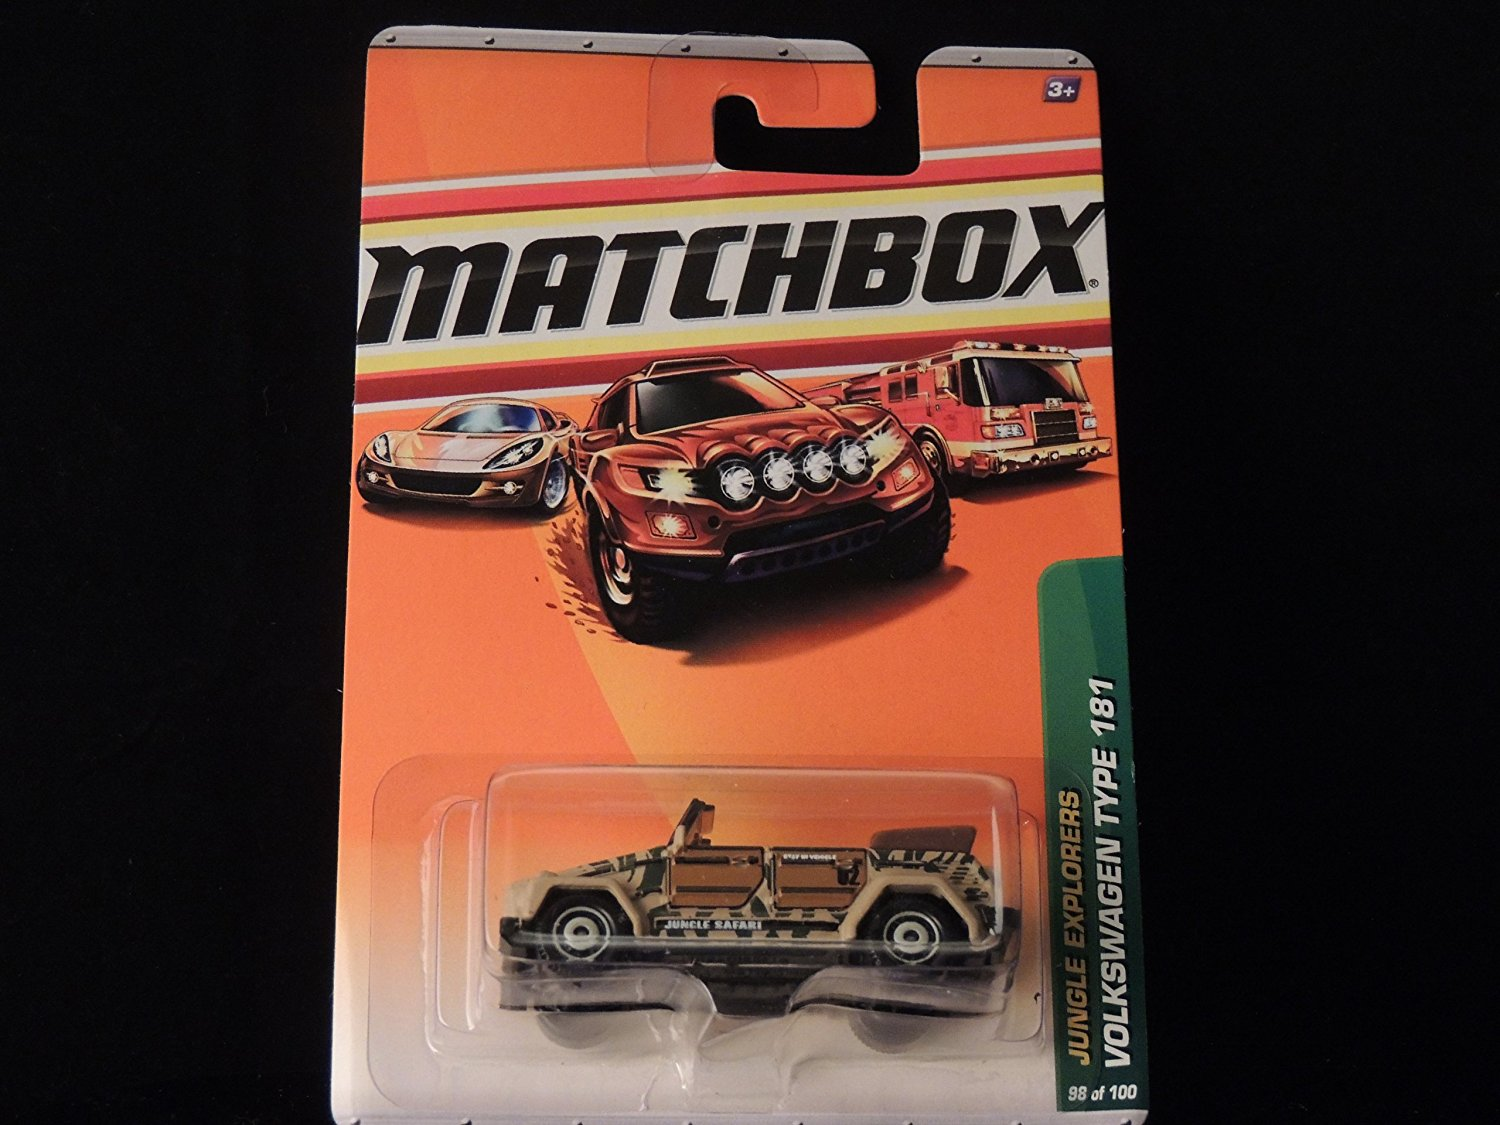 2010 JUNGLE EXPLORERS VOLKSWAGEN TYPE 181 98 OF 100, By Matchbox by